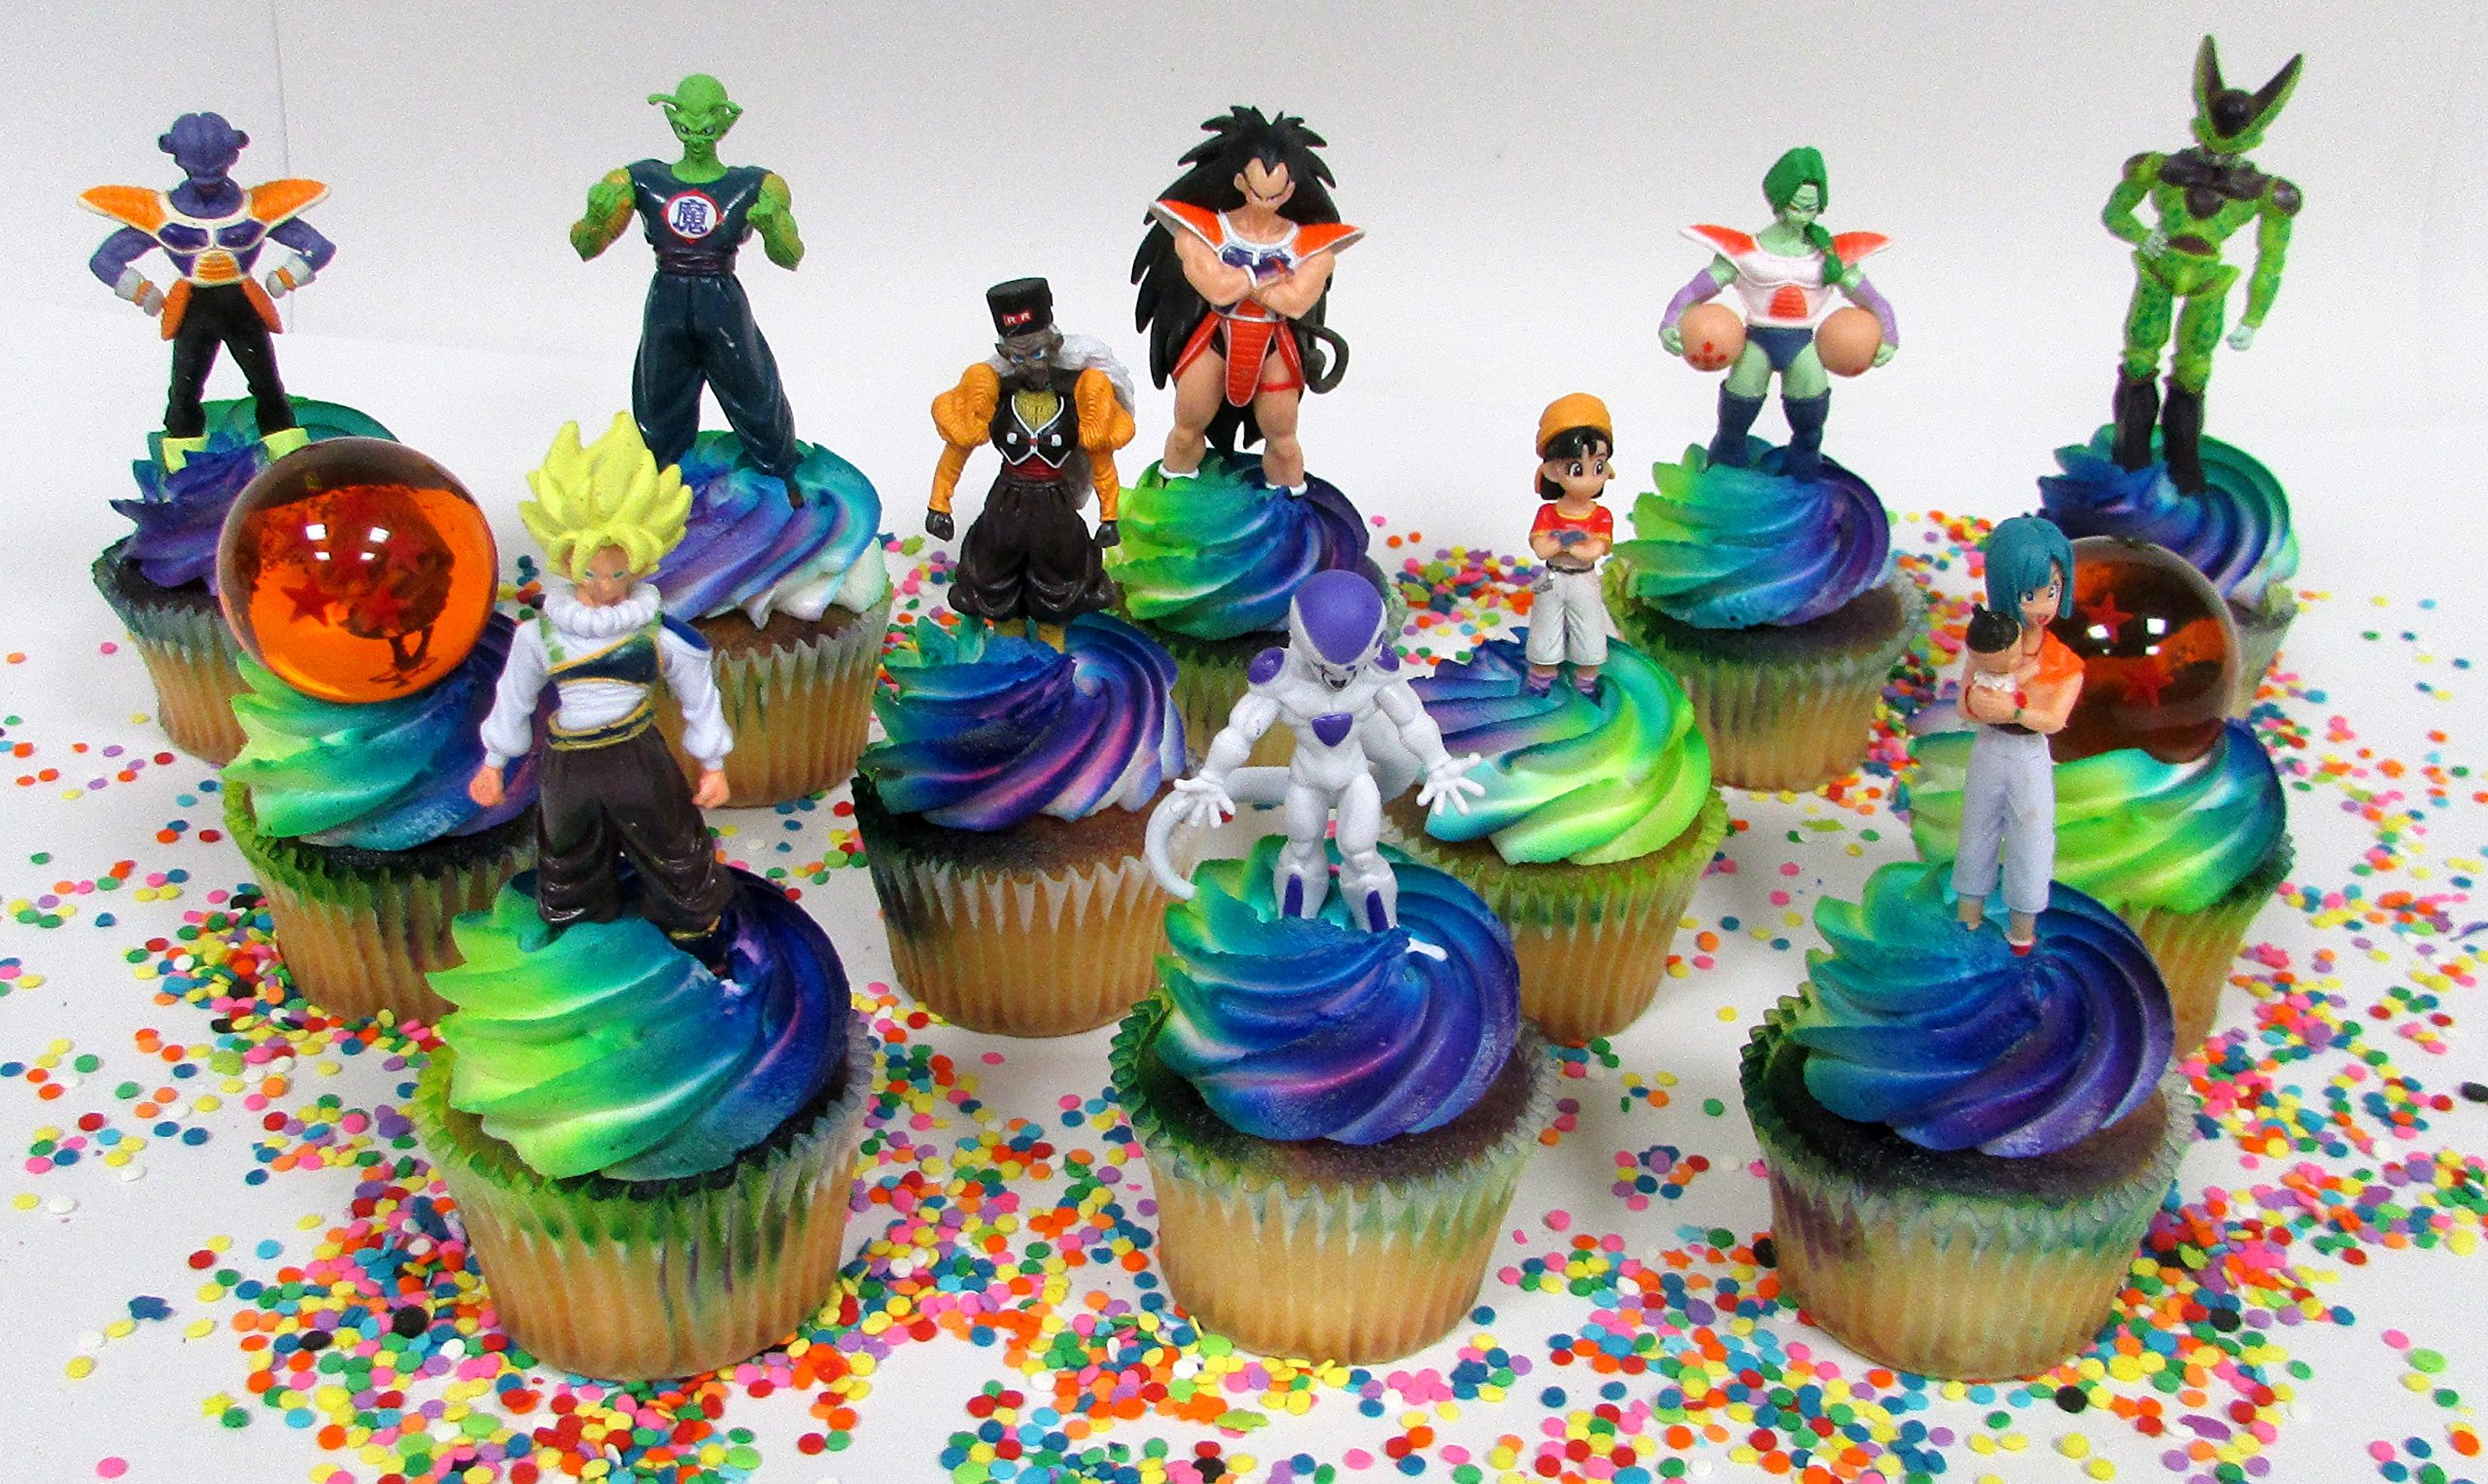 Get Quotations DRAGON BALL Z Themed Birthday Cupcake Topper Featuring Dragon Ball Characters And Decorative Accessories